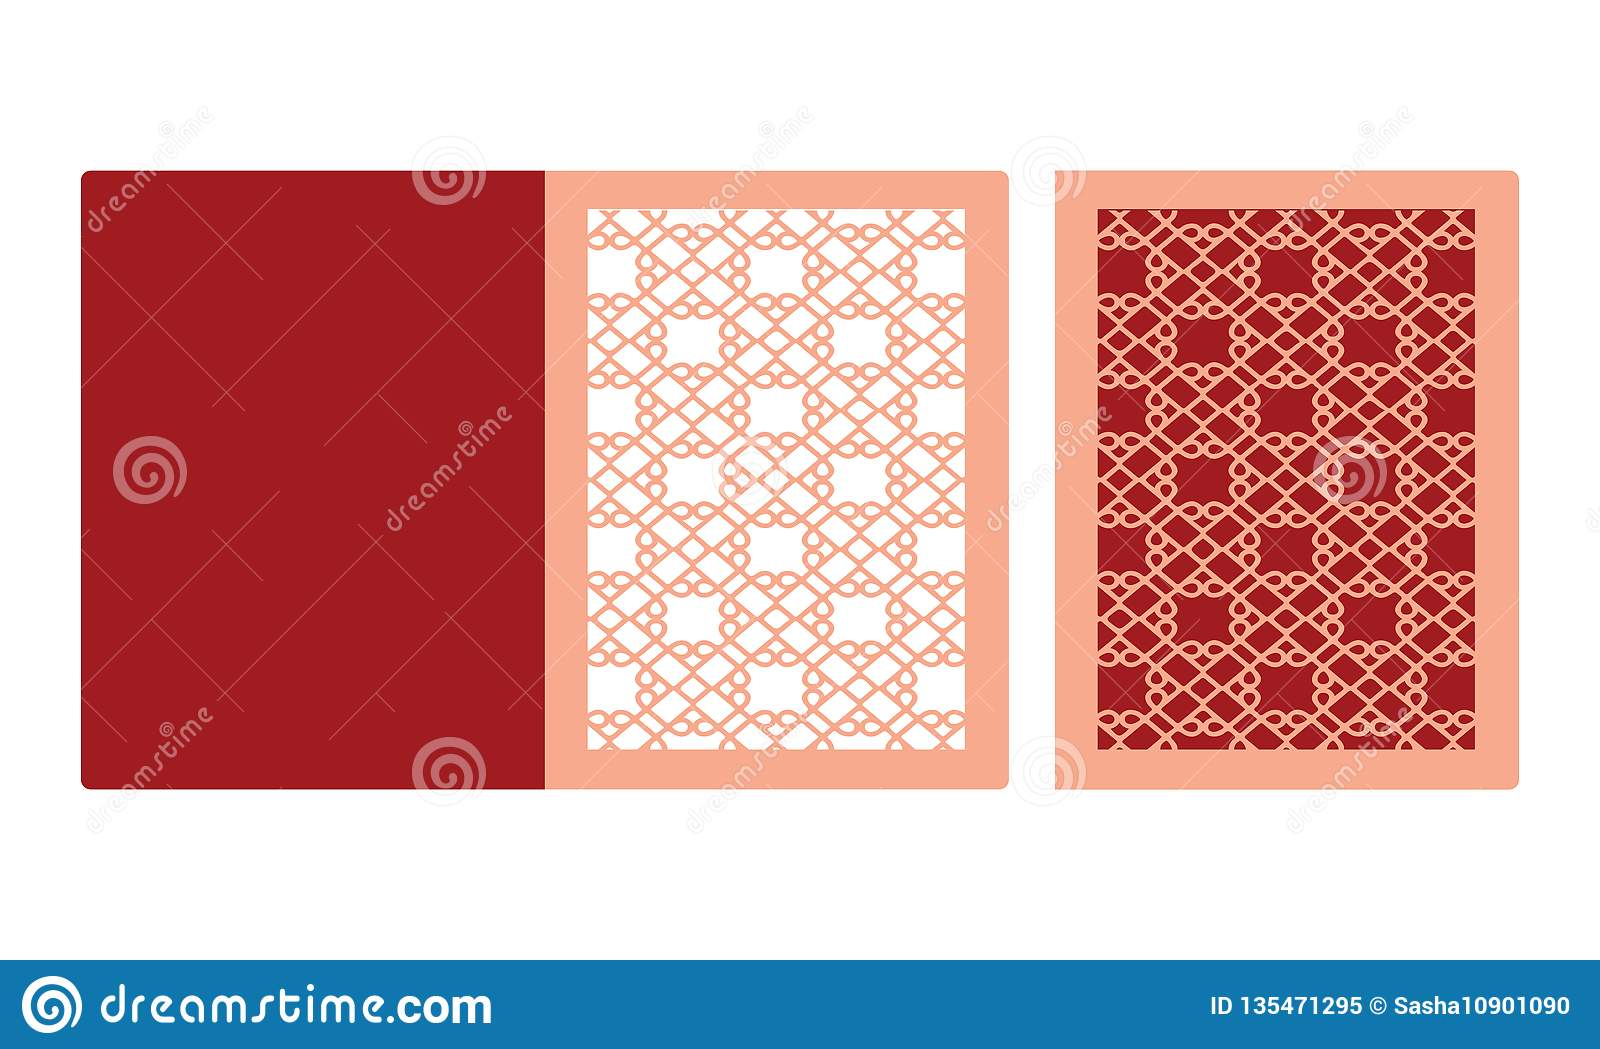 Laser Cut Wedding Invitation Die Cut Paper Card With Lace